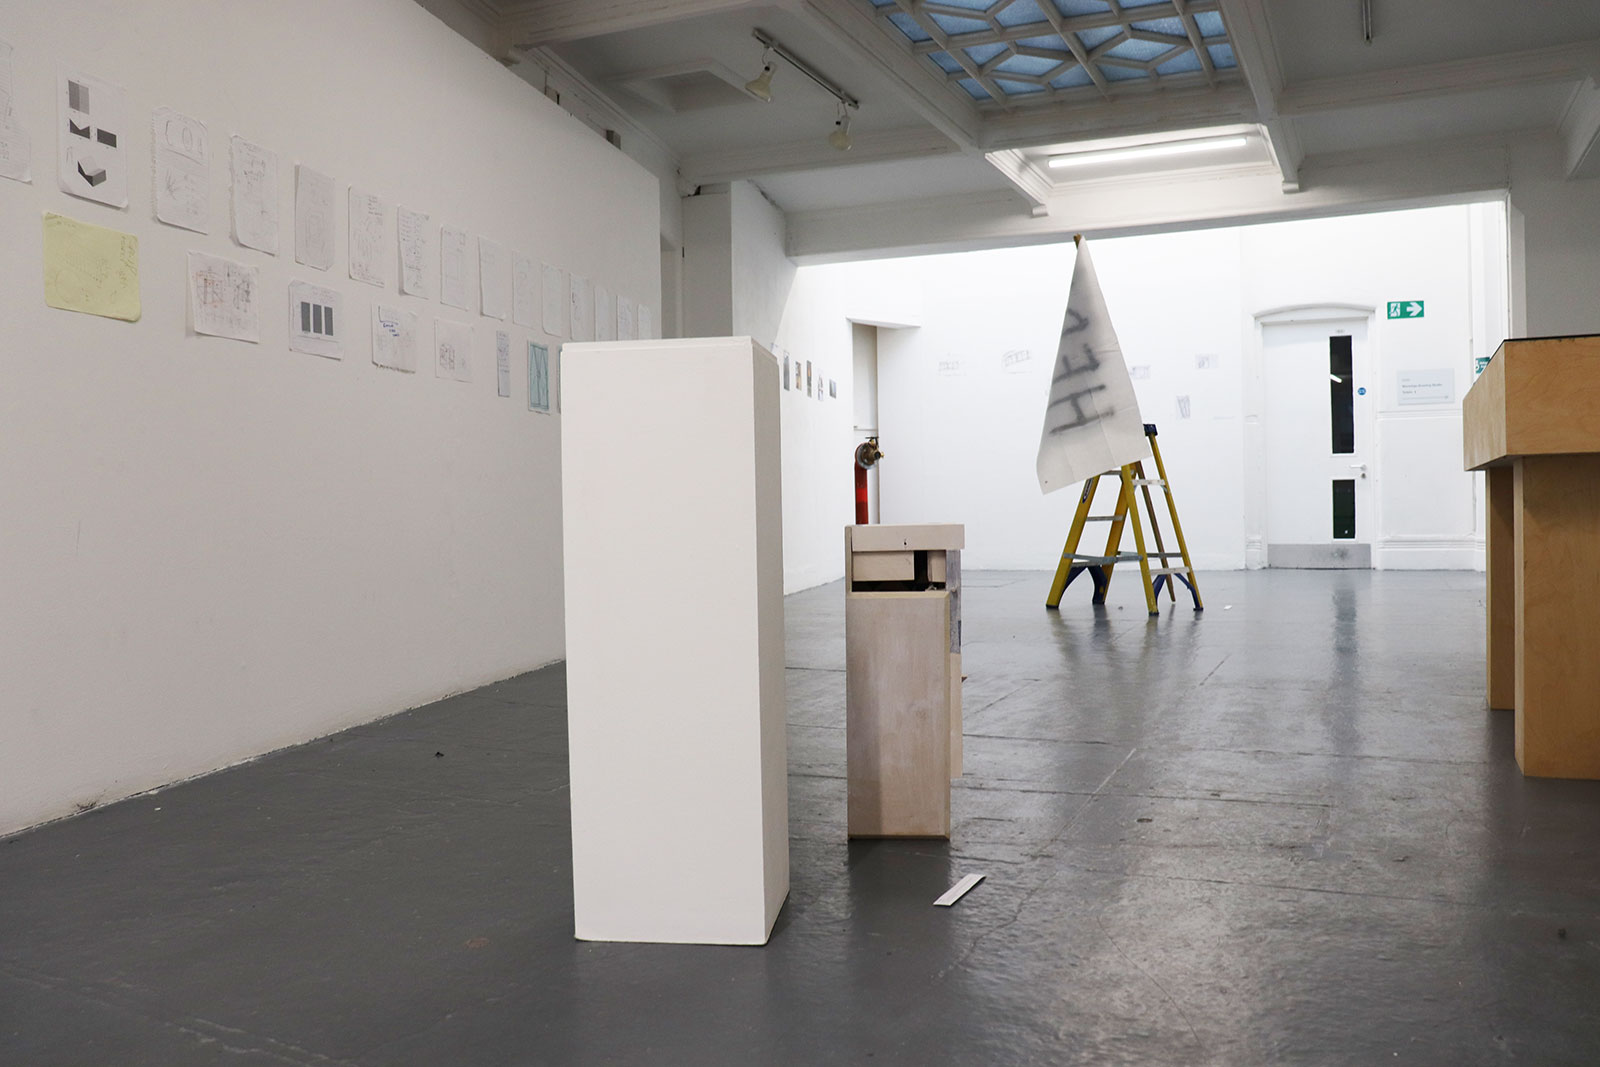 Fine Art space at Norwich University of the Arts showing plinths and a ladder